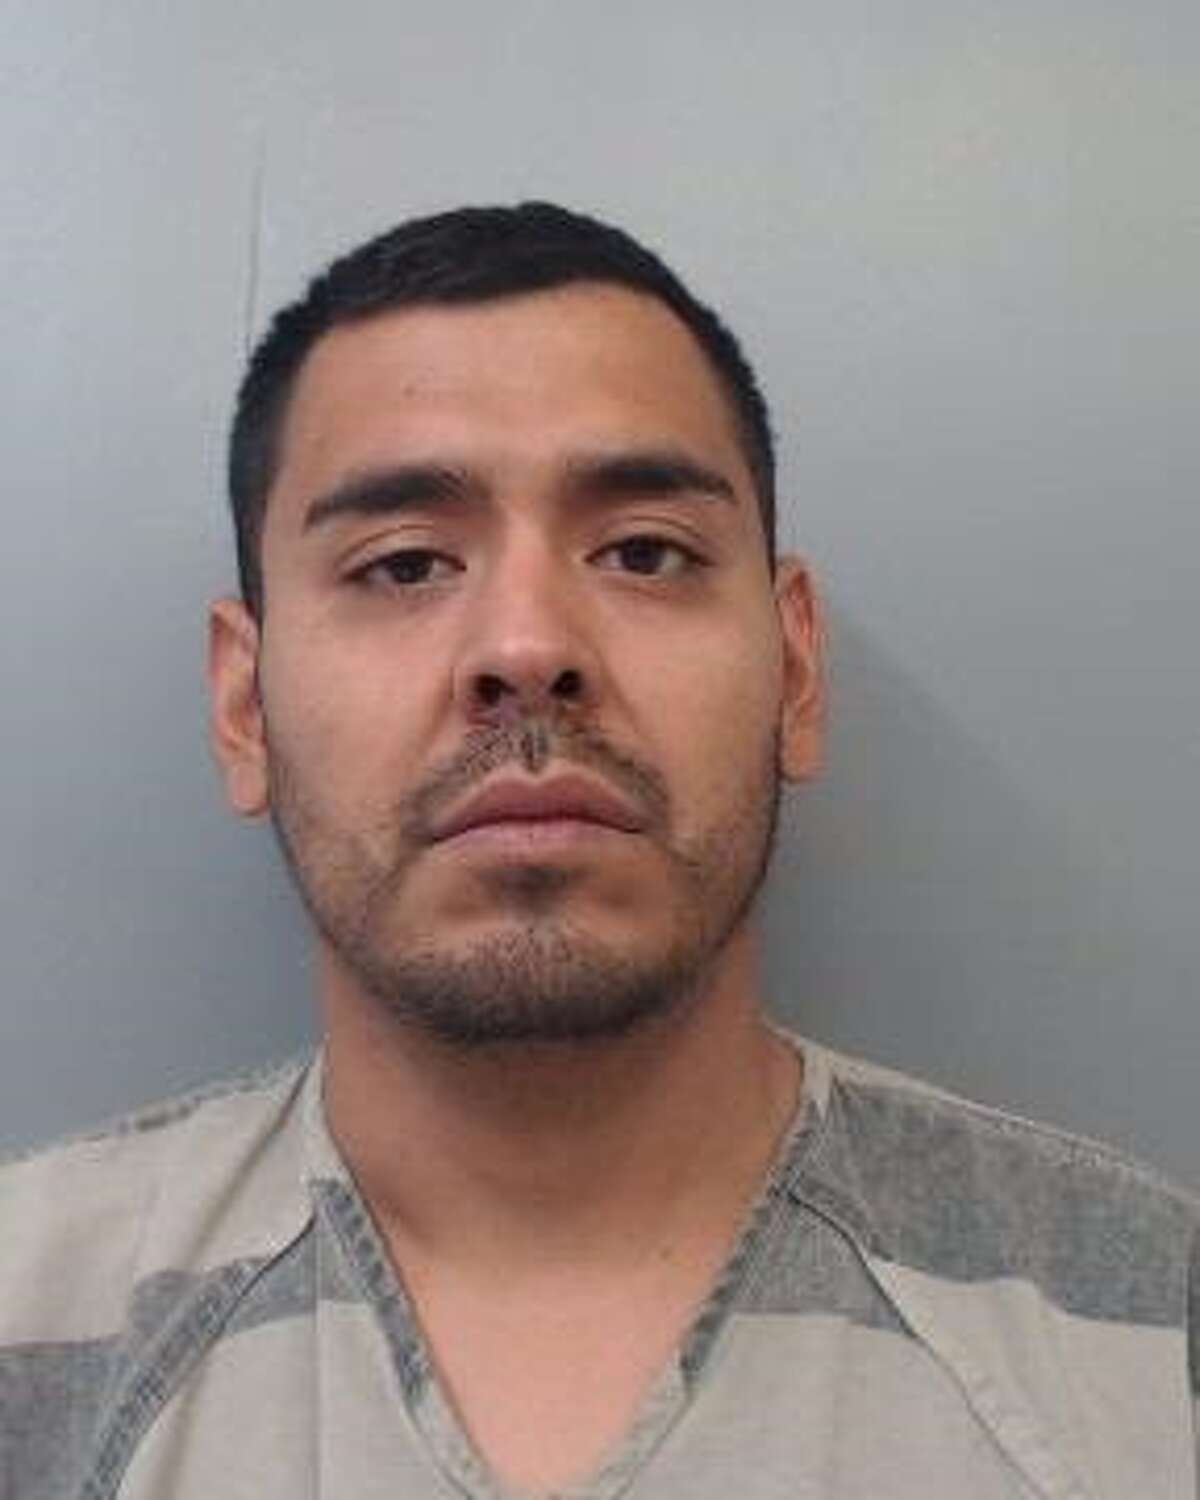 Martin Salvador Licea Rosales, 25, was charged with assault, family violence.